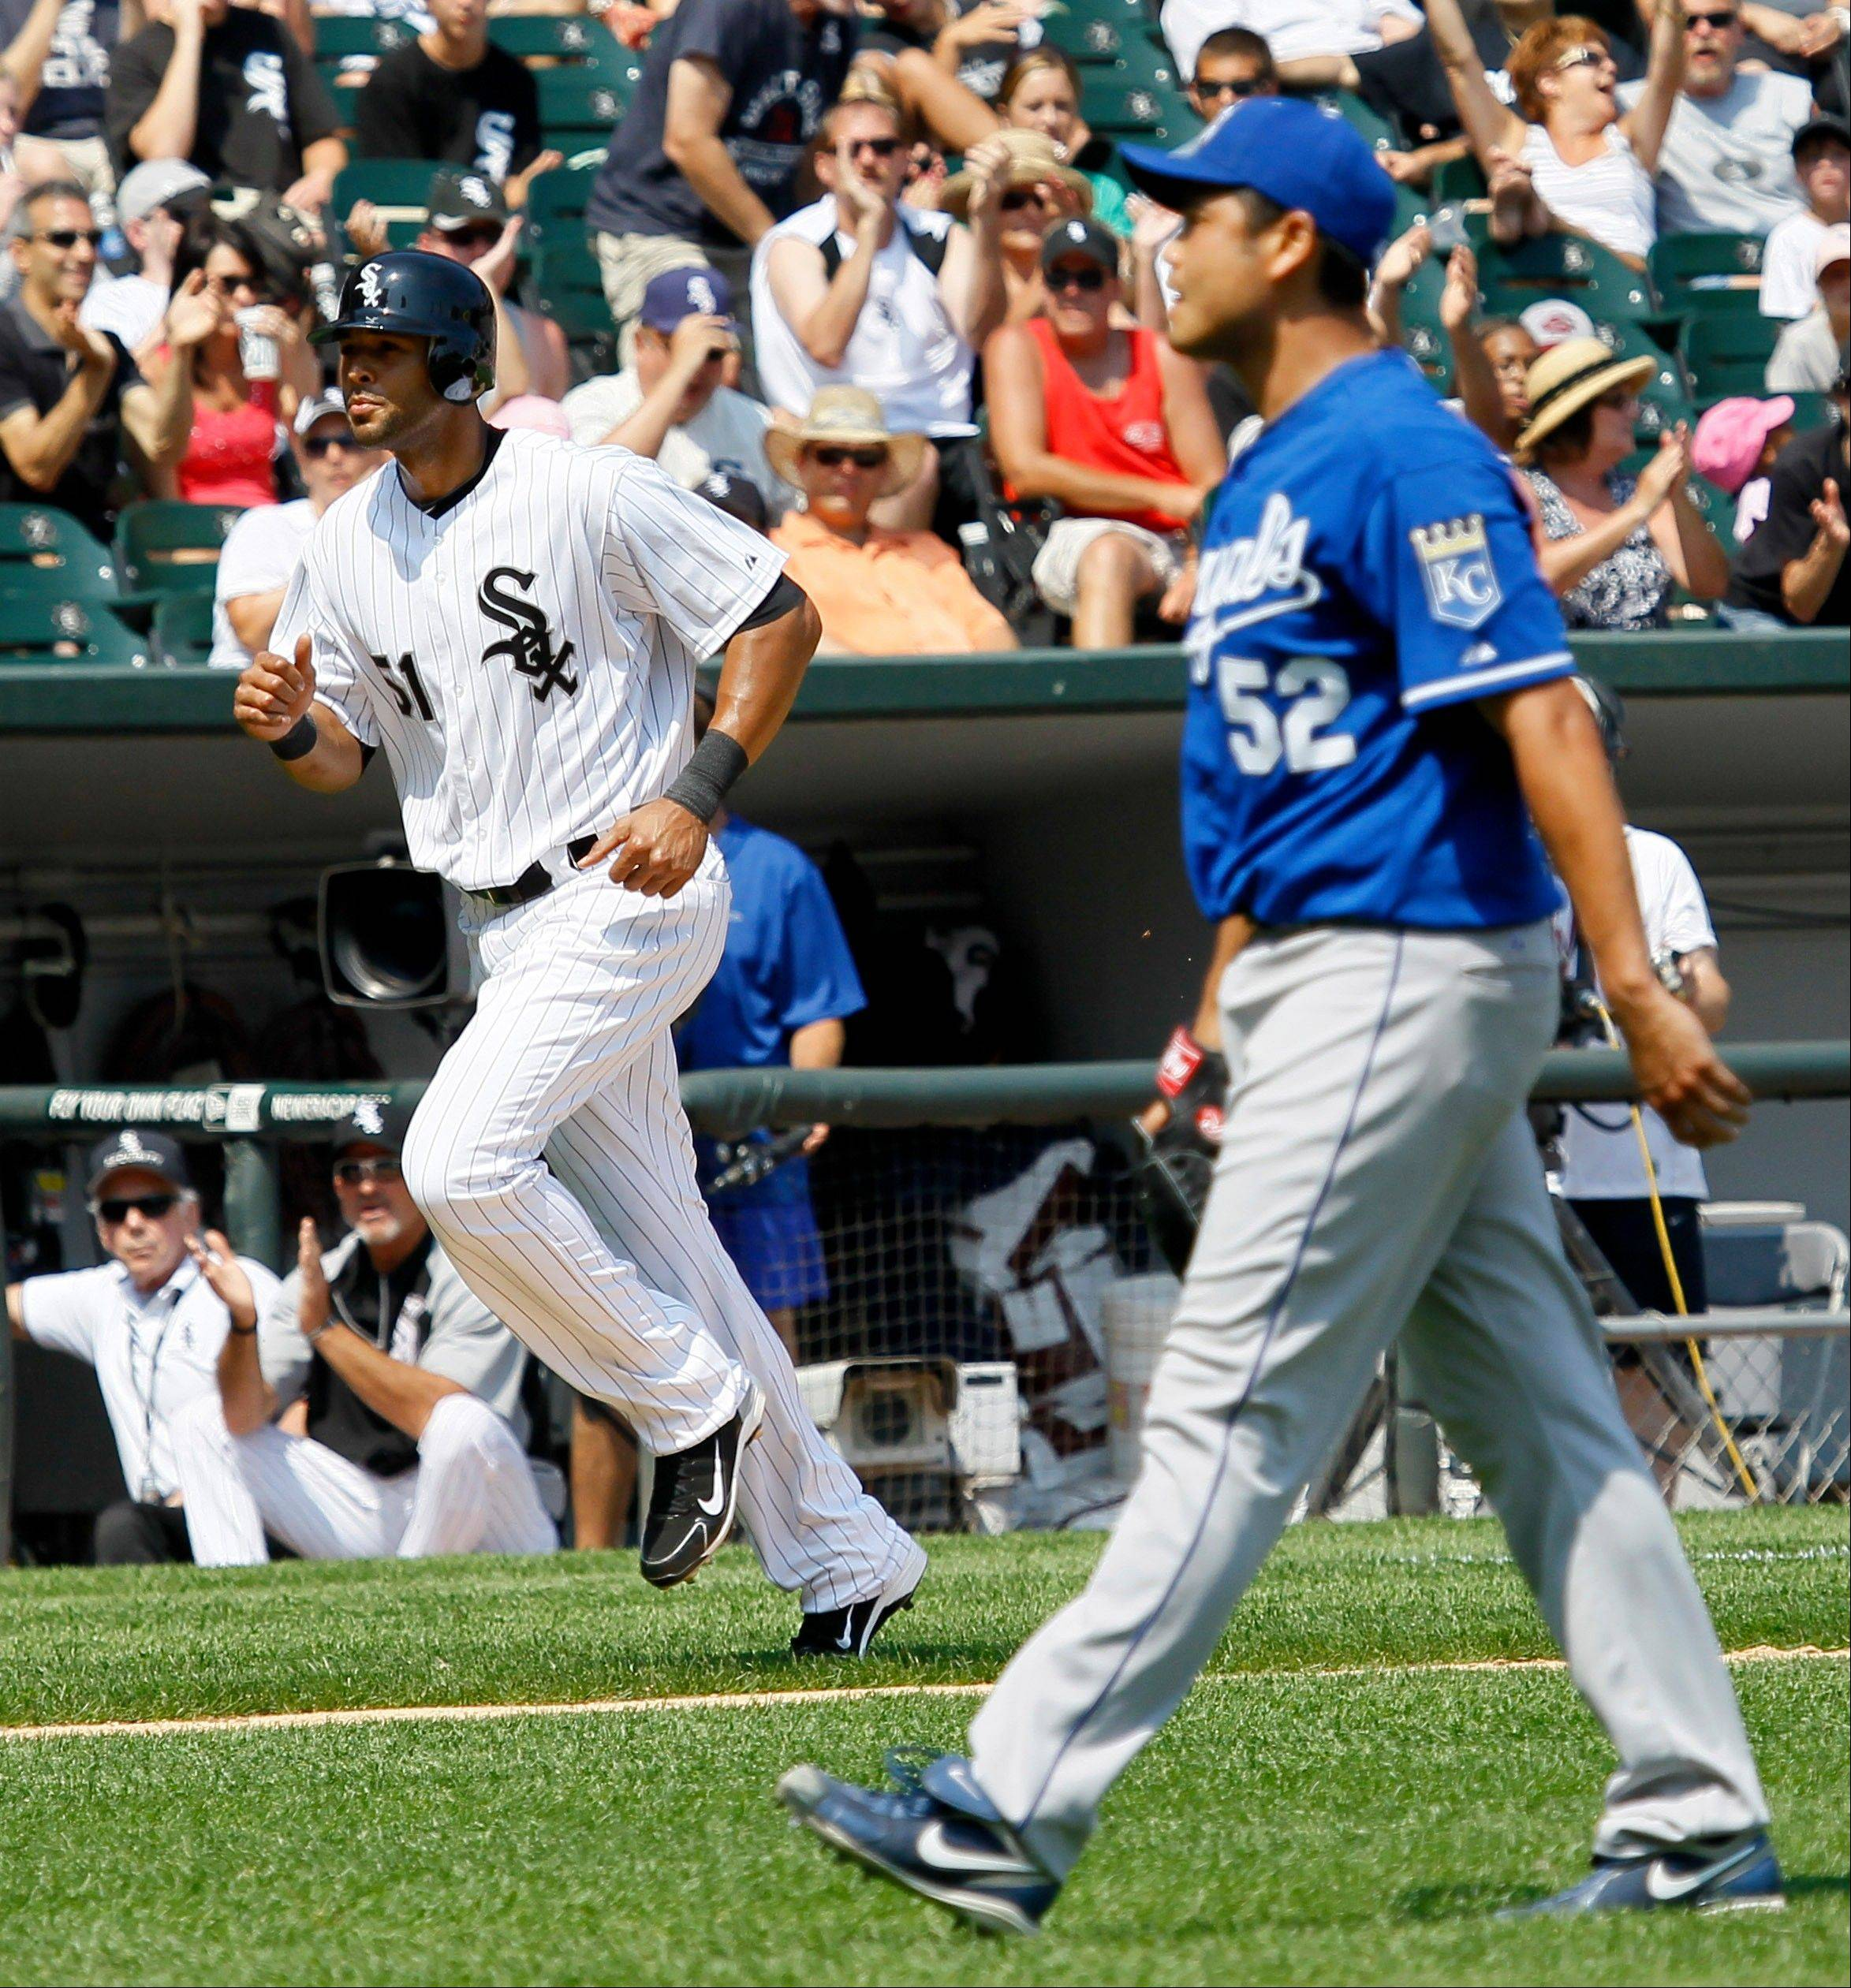 Alex Rios, left, trots home to score after Kansas City Royals starting pitcher Bruce Chen, right, walked Adam Dunn, with the bases loaded, during the sixth inning of a baseball game Wednesday, July 6, 2011 in Chicago.